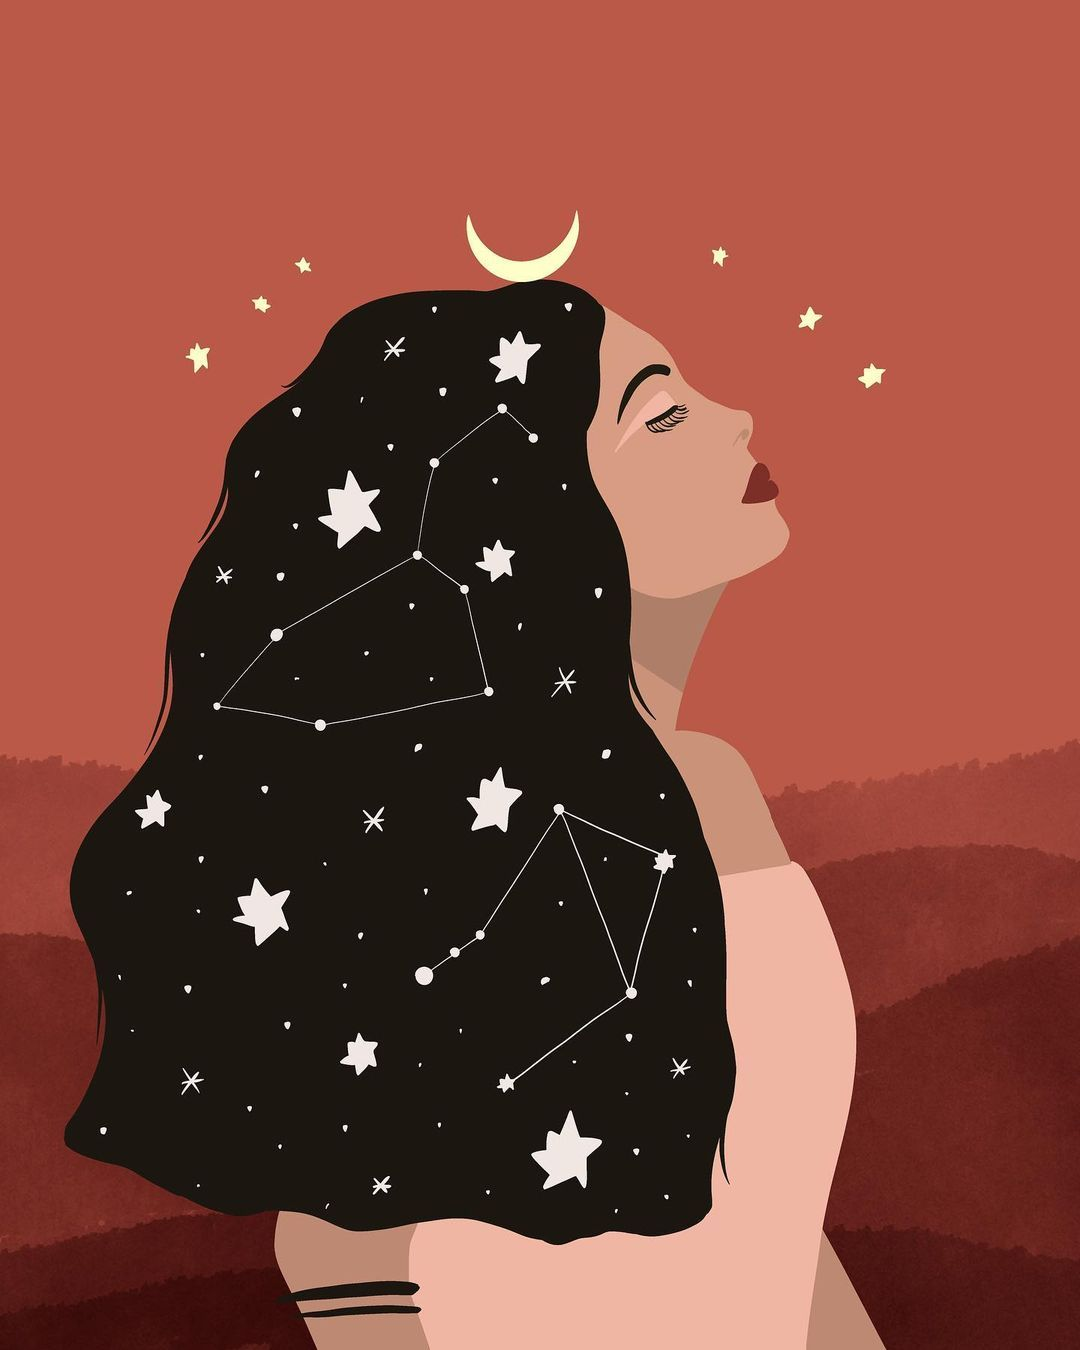 5 Best Astrology Apps To Try In 2021